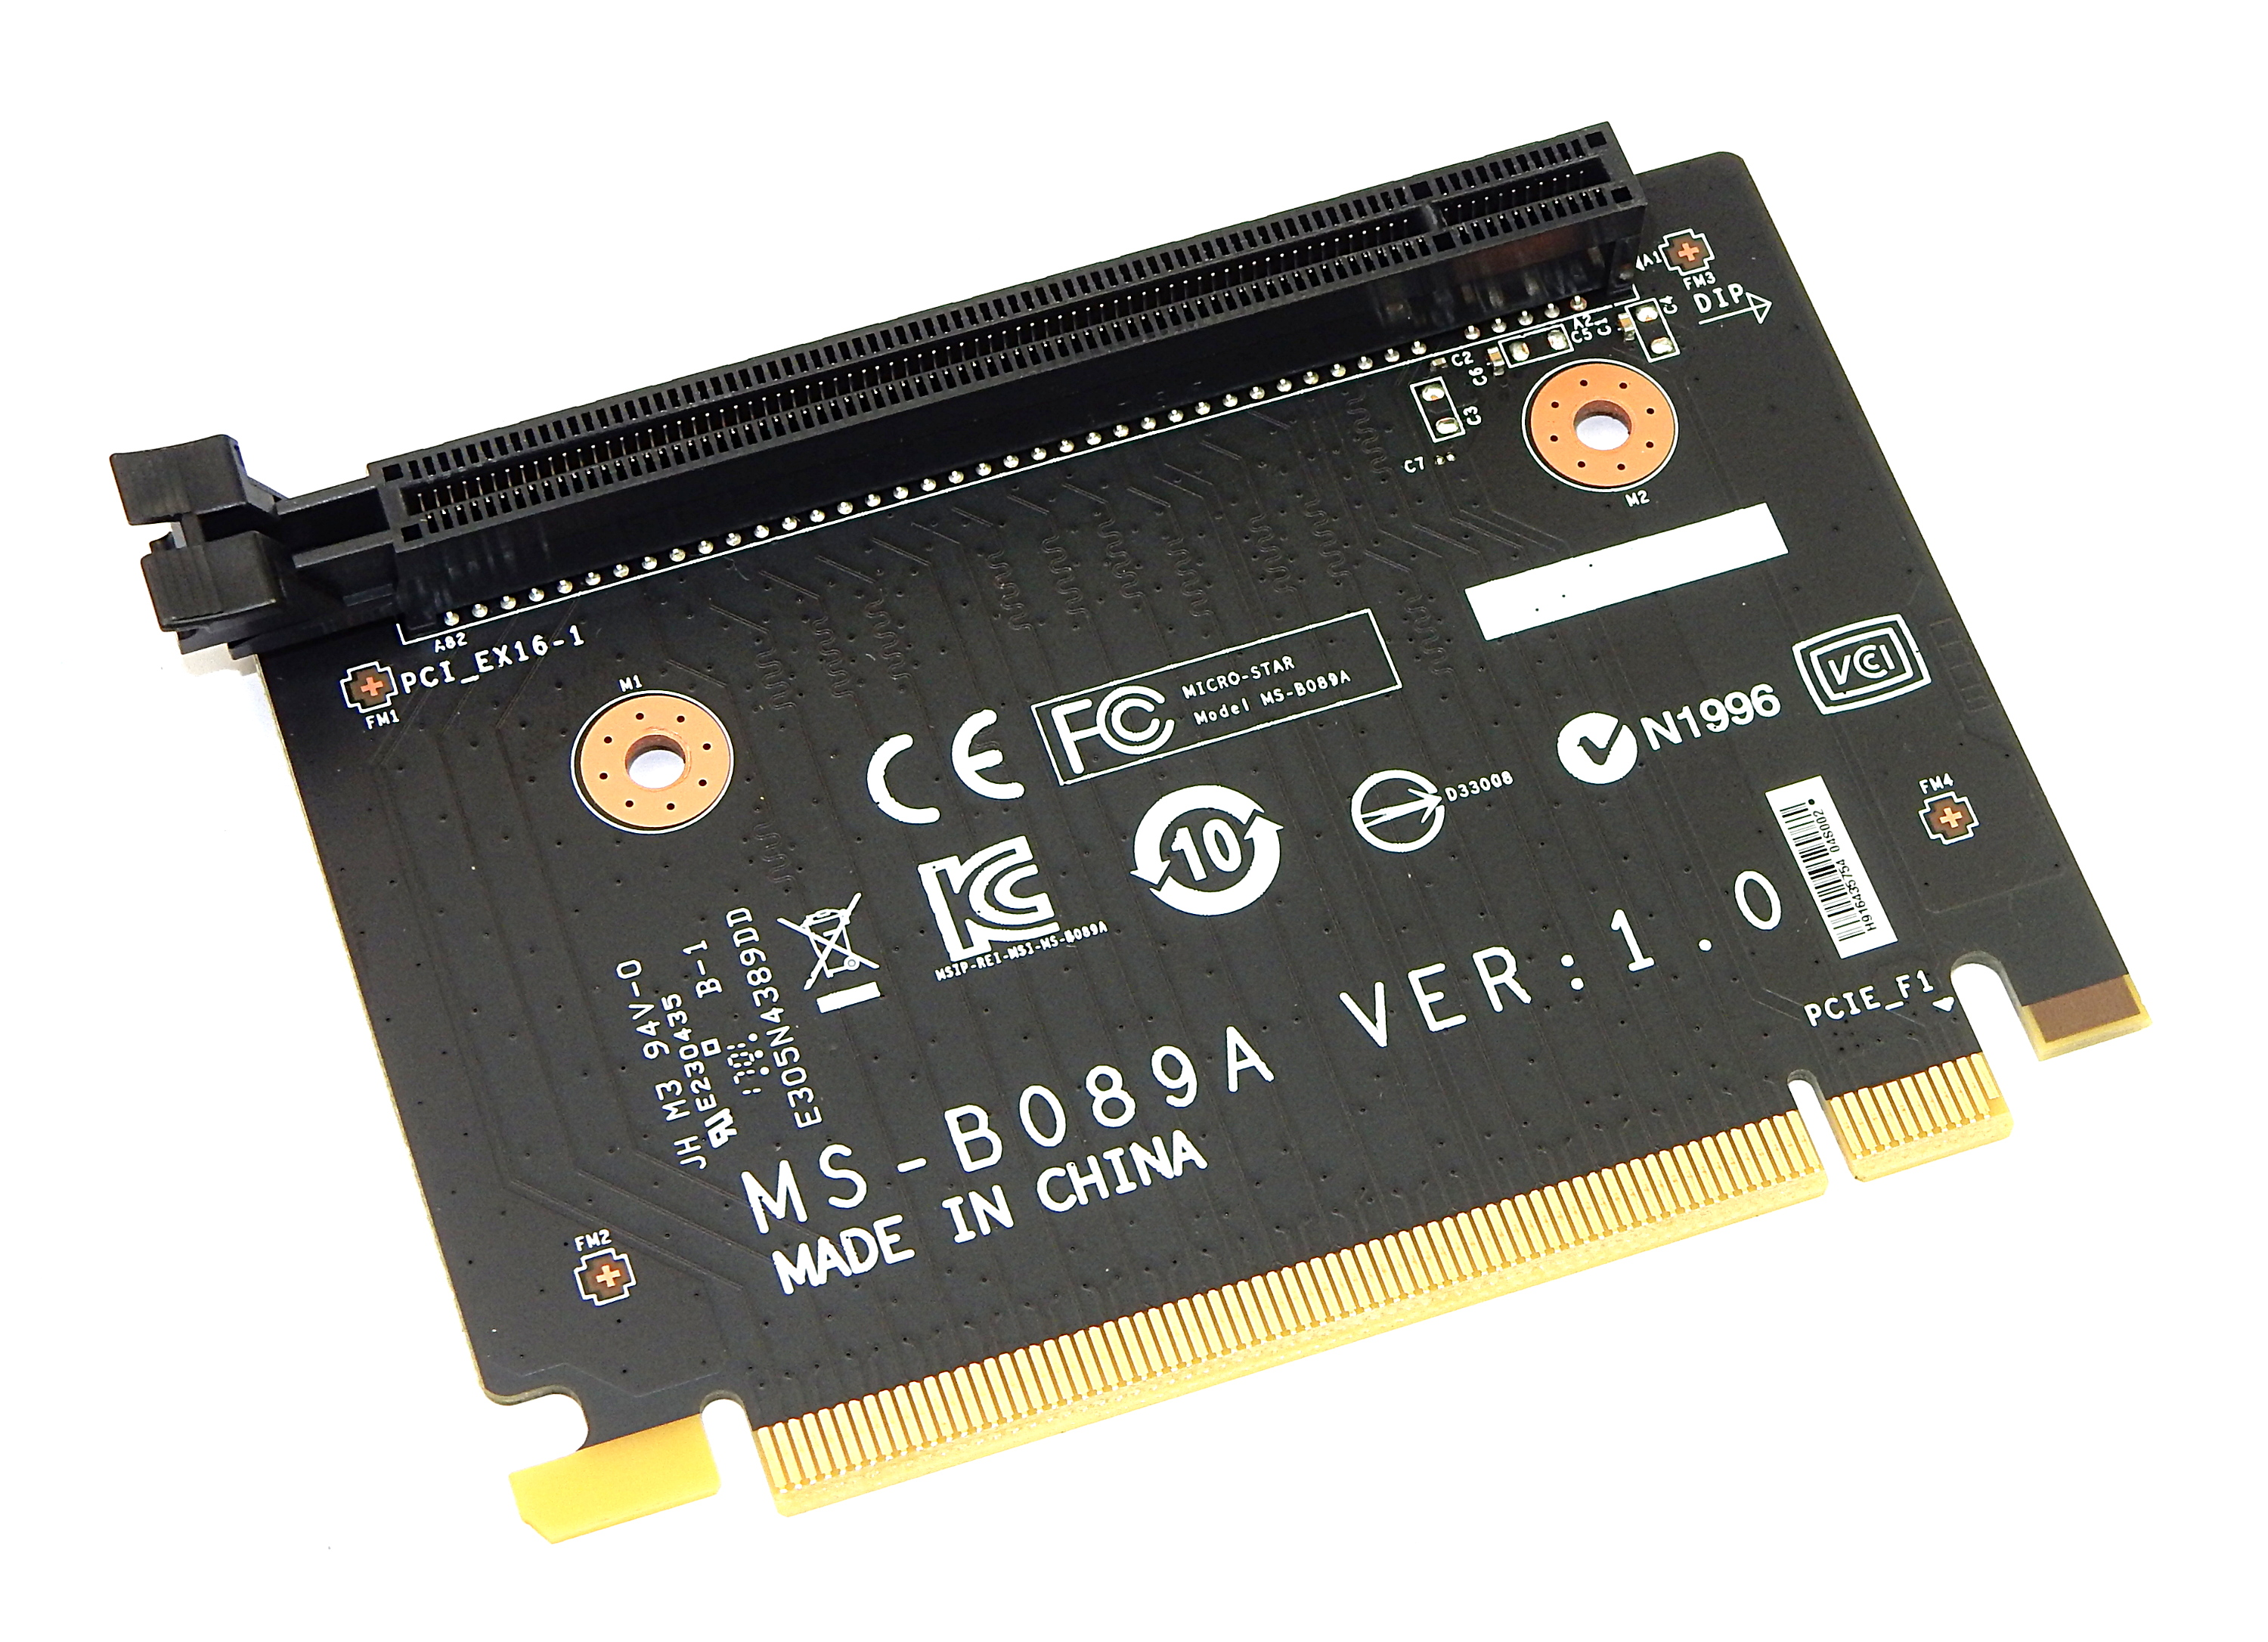 MSI MS-B089A PCI-e Riser Board Ver:1.0